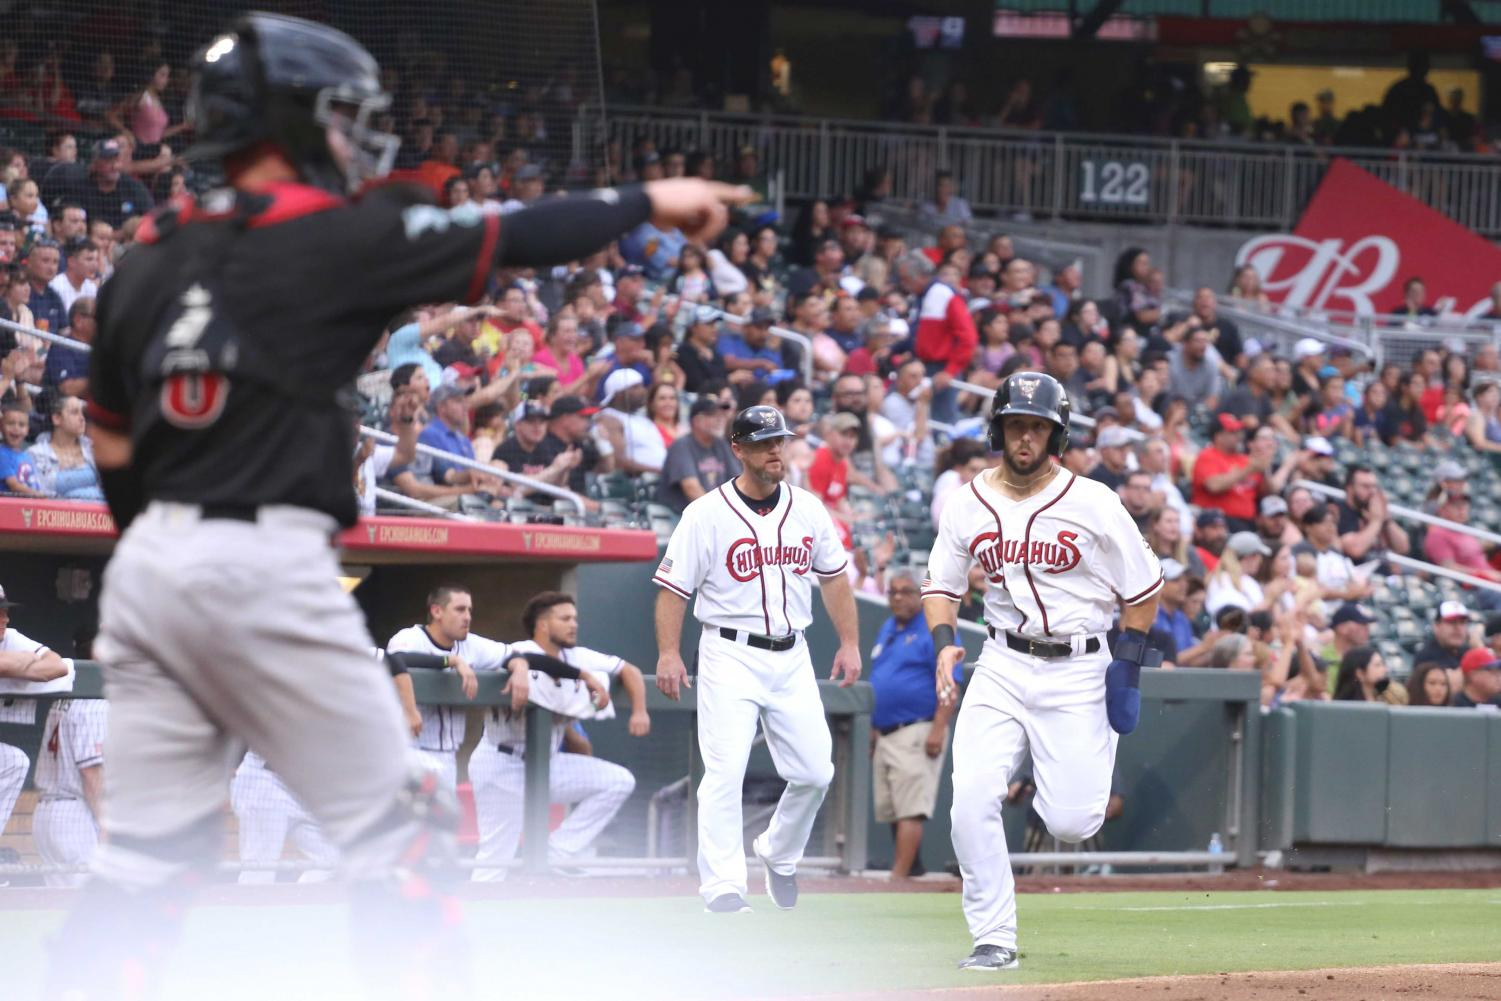 Left fielder Forrestt Allday runs to home base and scores at the last game of the series on Friday, June 15 at the Southwest University Park.